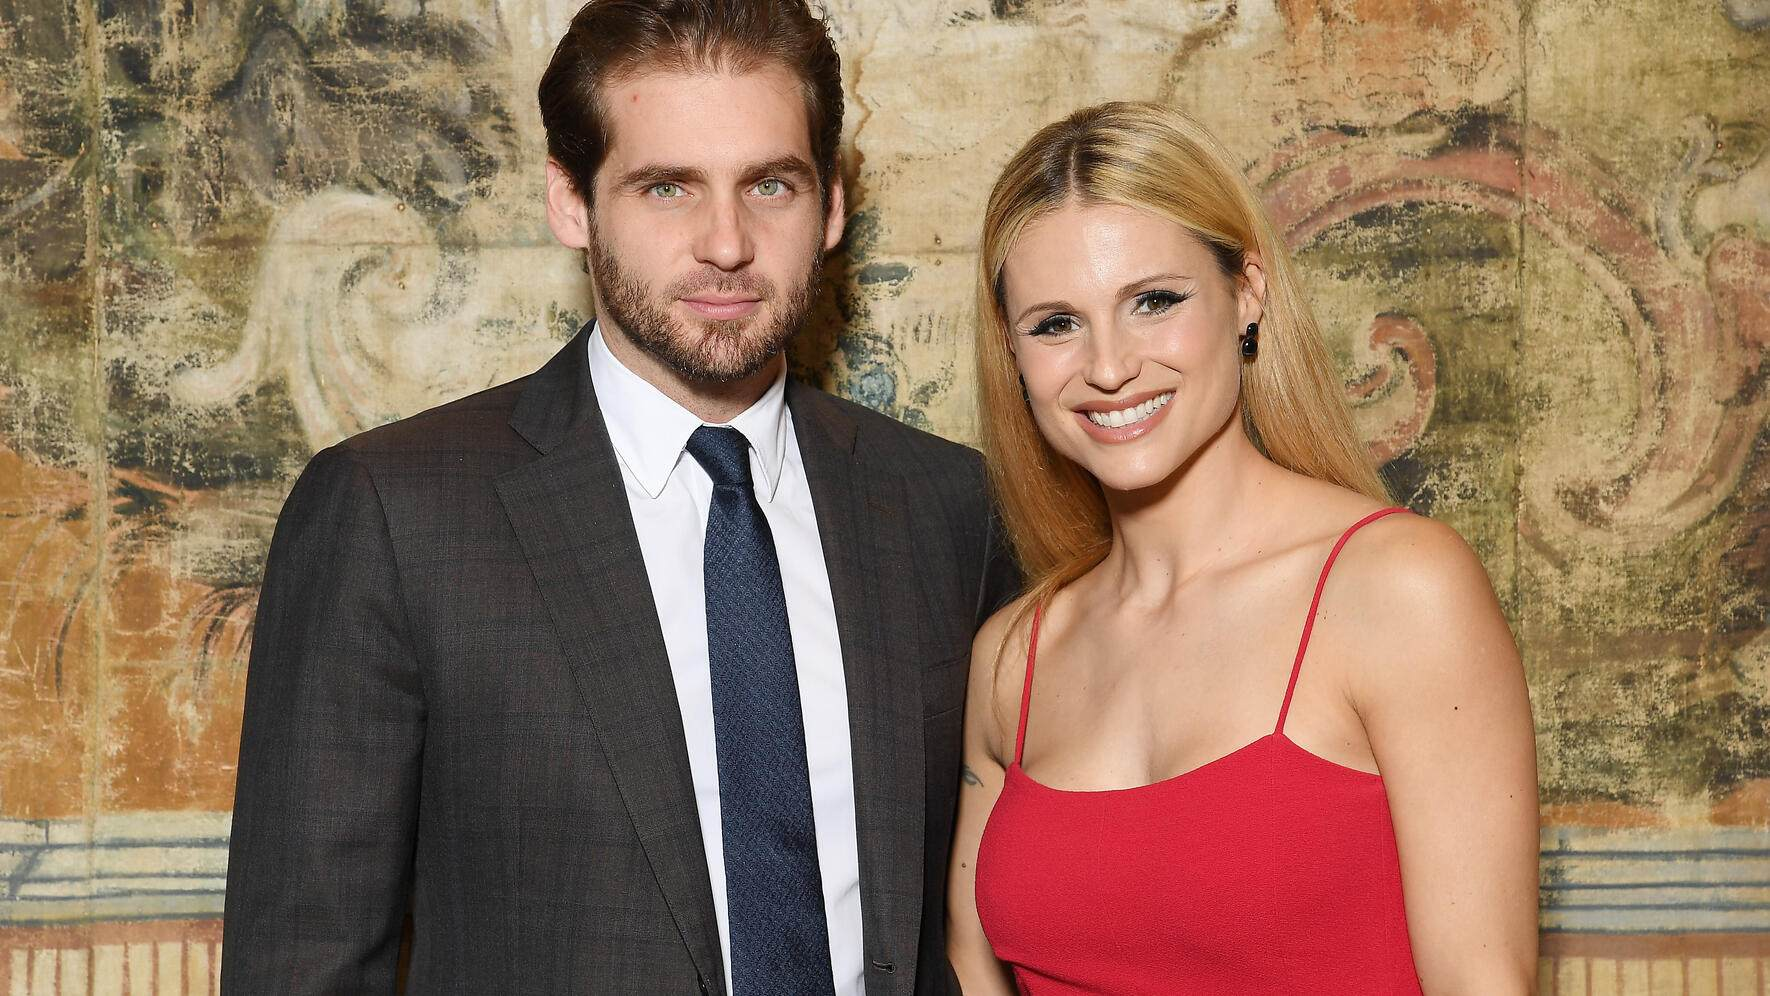 ROME, ITALY - NOVEMBER 01:  Michelle Hunziker and Tomaso Trussardi attend Doppia Difesa Gala during the 12th Rome Film Fest at Hotel Bernini Bristol on November 1, 2017 in Rome, Italy.  (Photo by Venturelli/Getty Images)